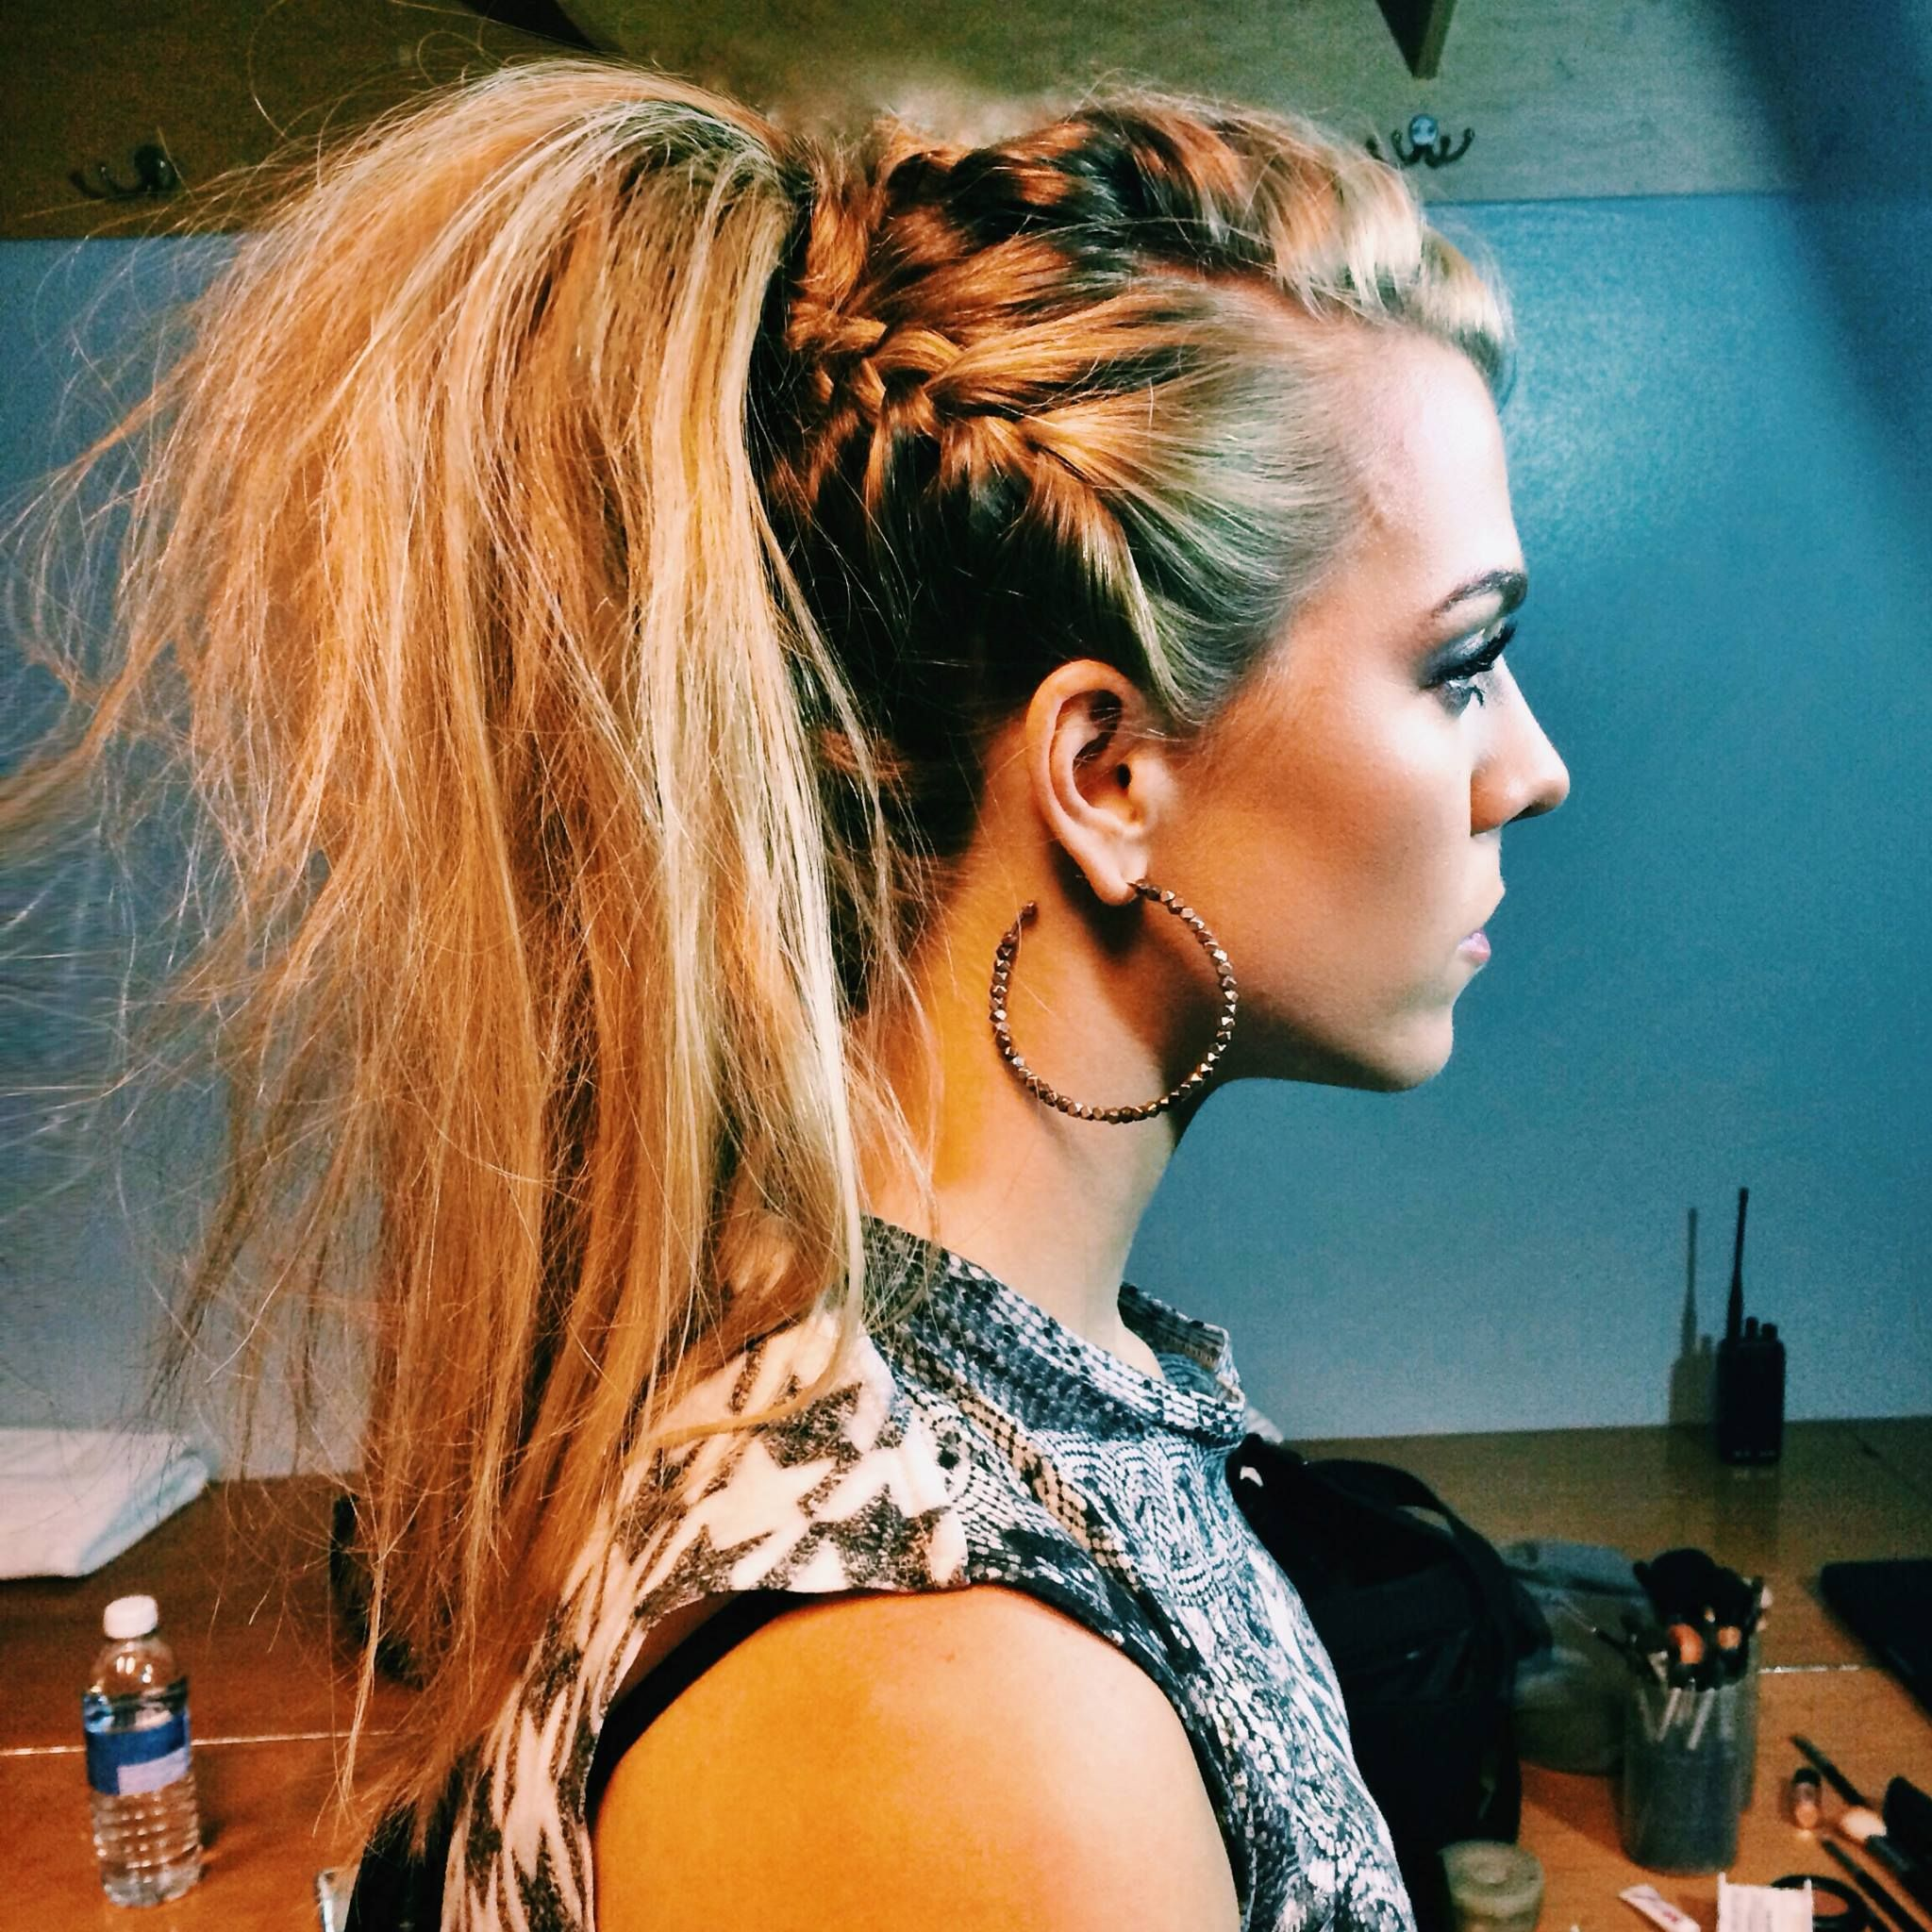 kimberly perry's braided ponytaillove love love. yes